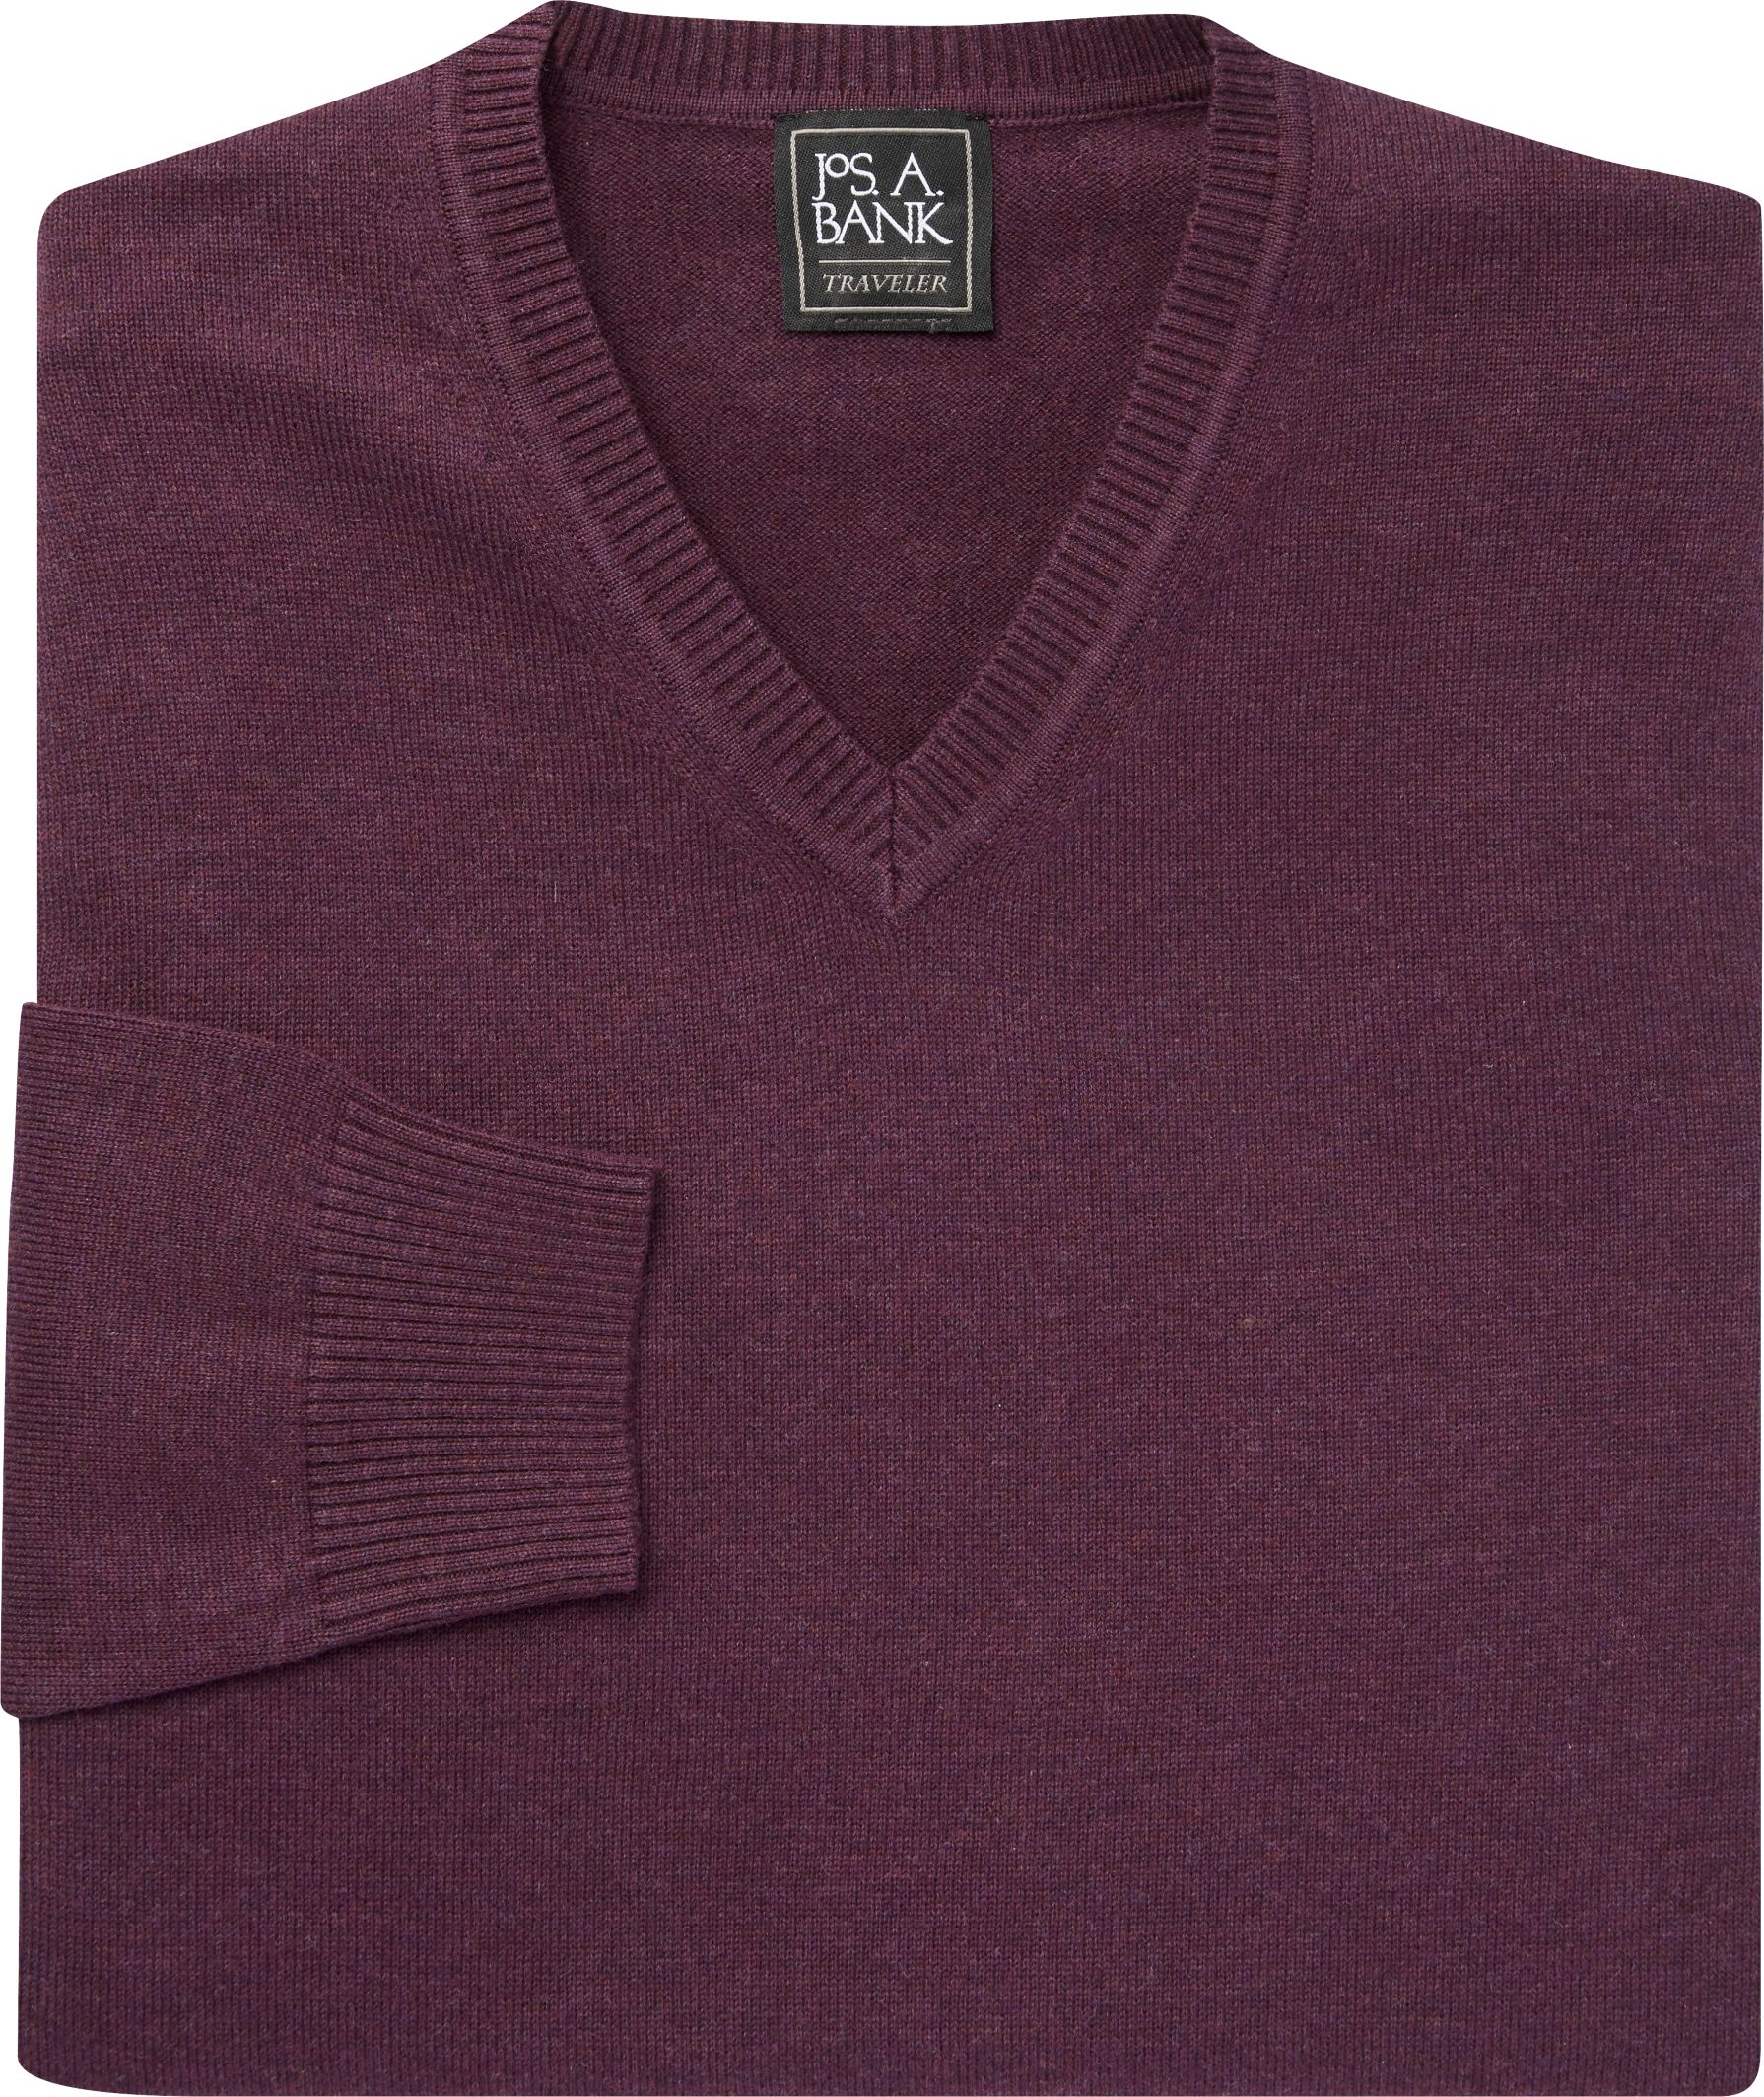 All Sweaters | Men's Sweaters | JoS. A. Bank Clothiers